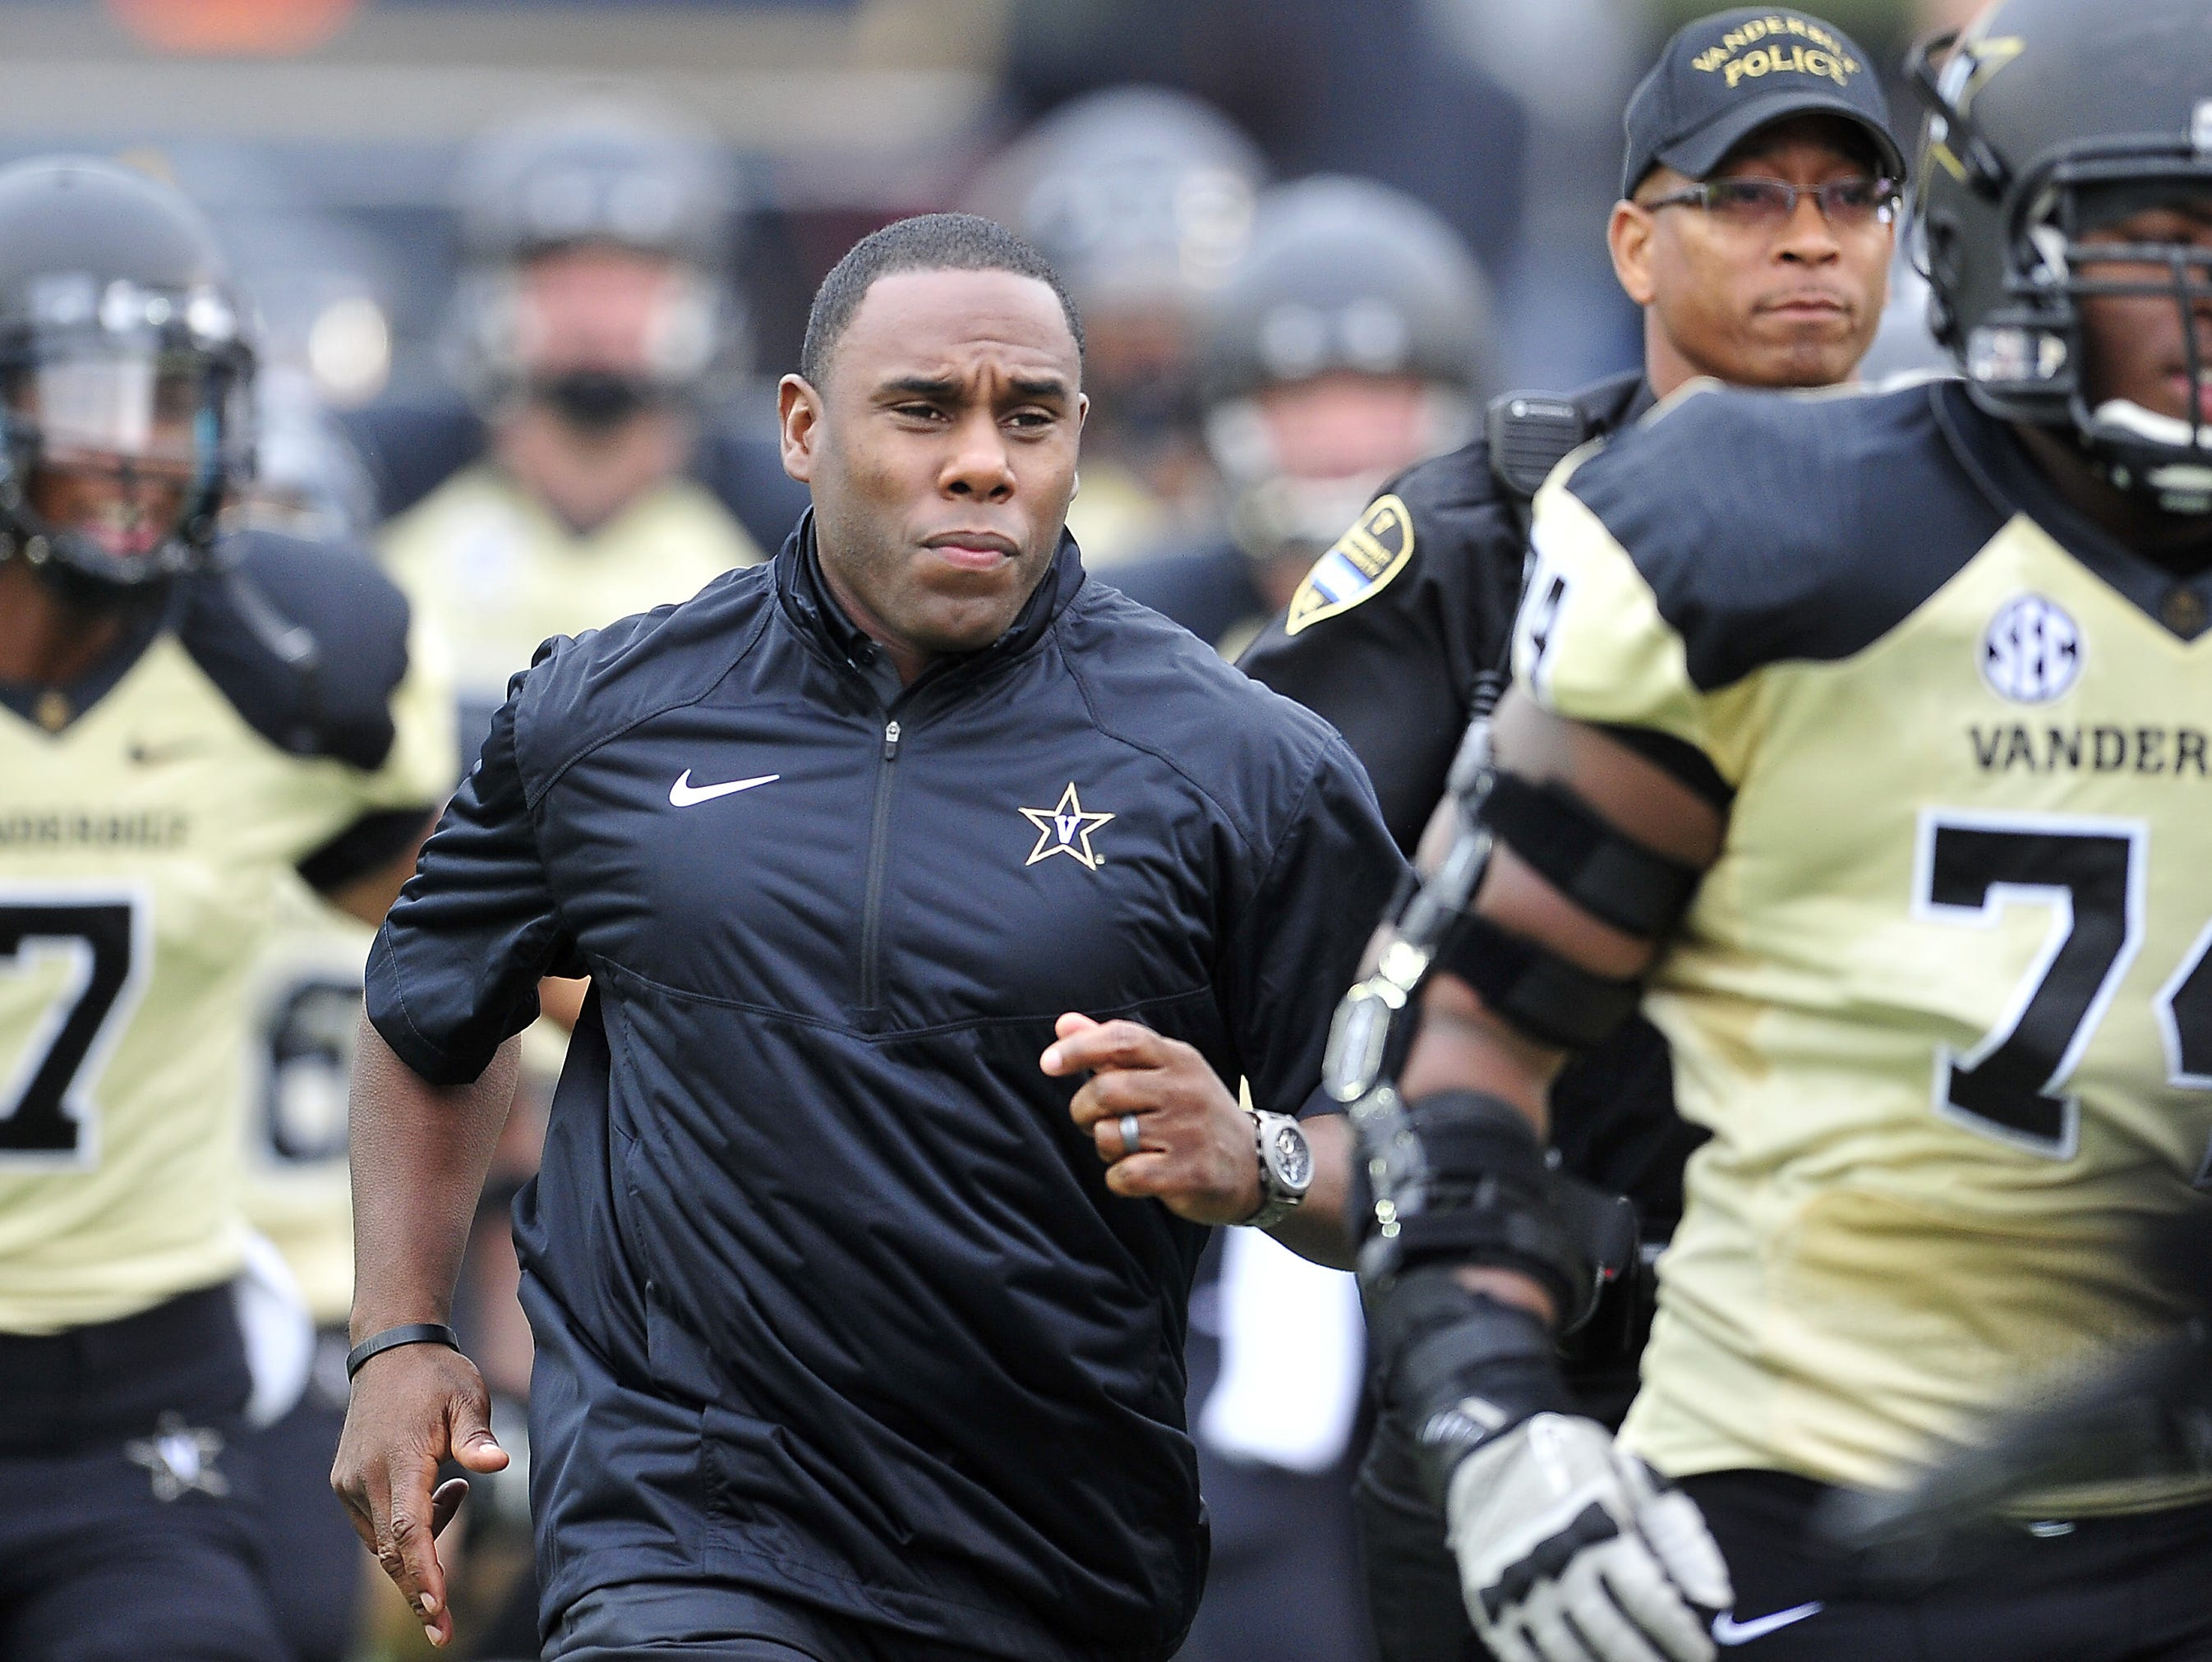 Vanderbilt coach Derek Mason said he's not placing special significance on Saturday's game at MTSU.